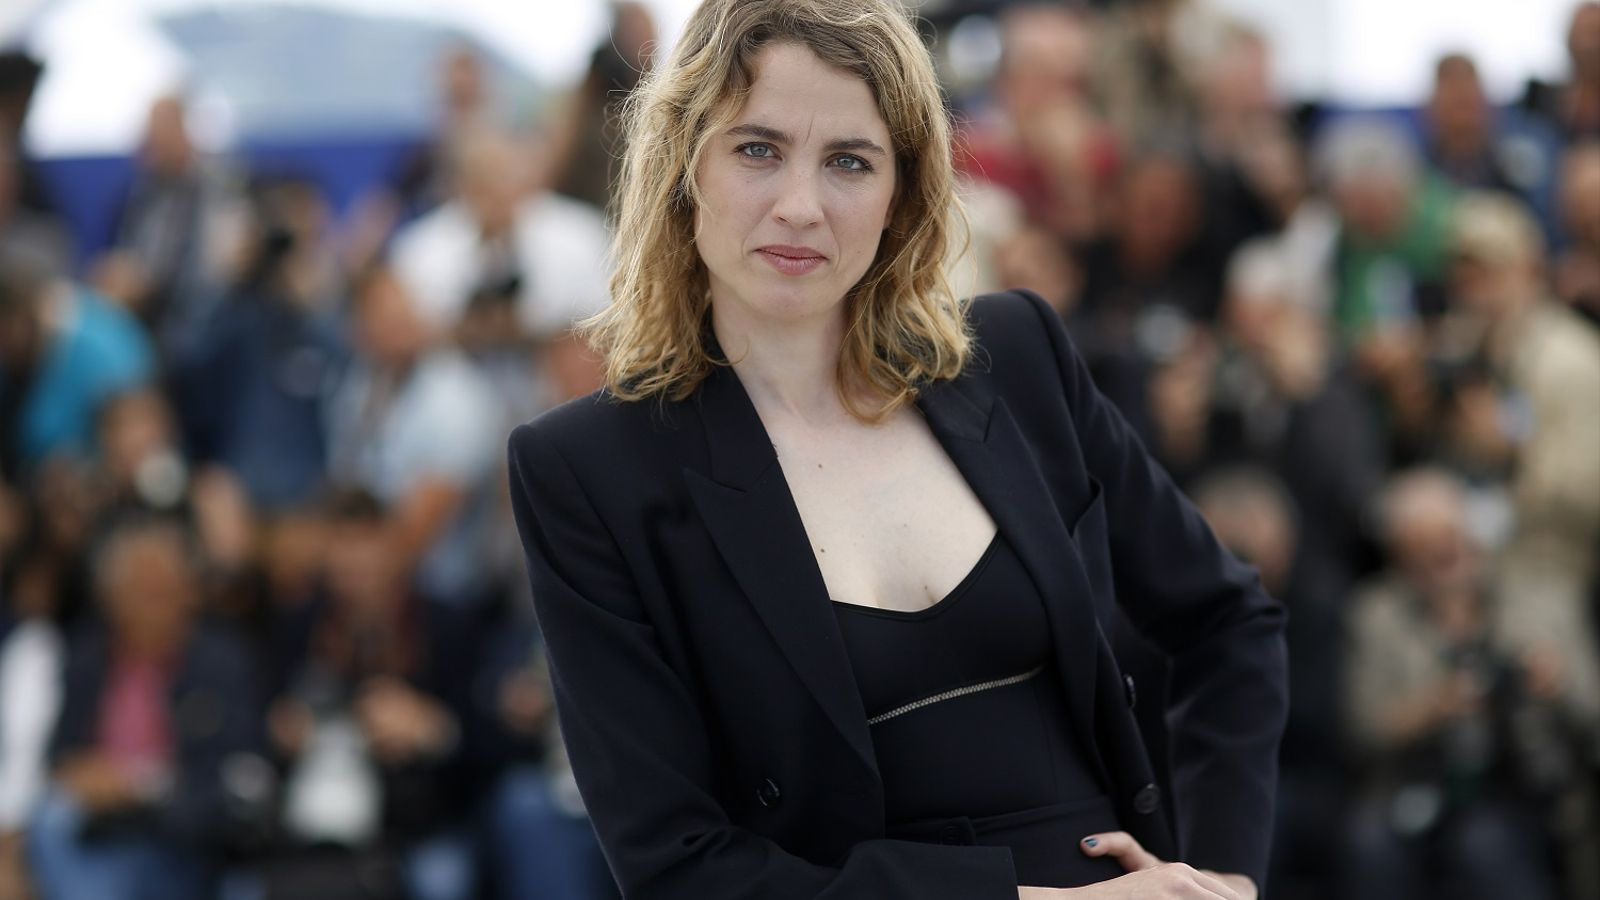 L'actriu Adèle Haenel acusa el director Christophe Ruggia d'assetjament sexual